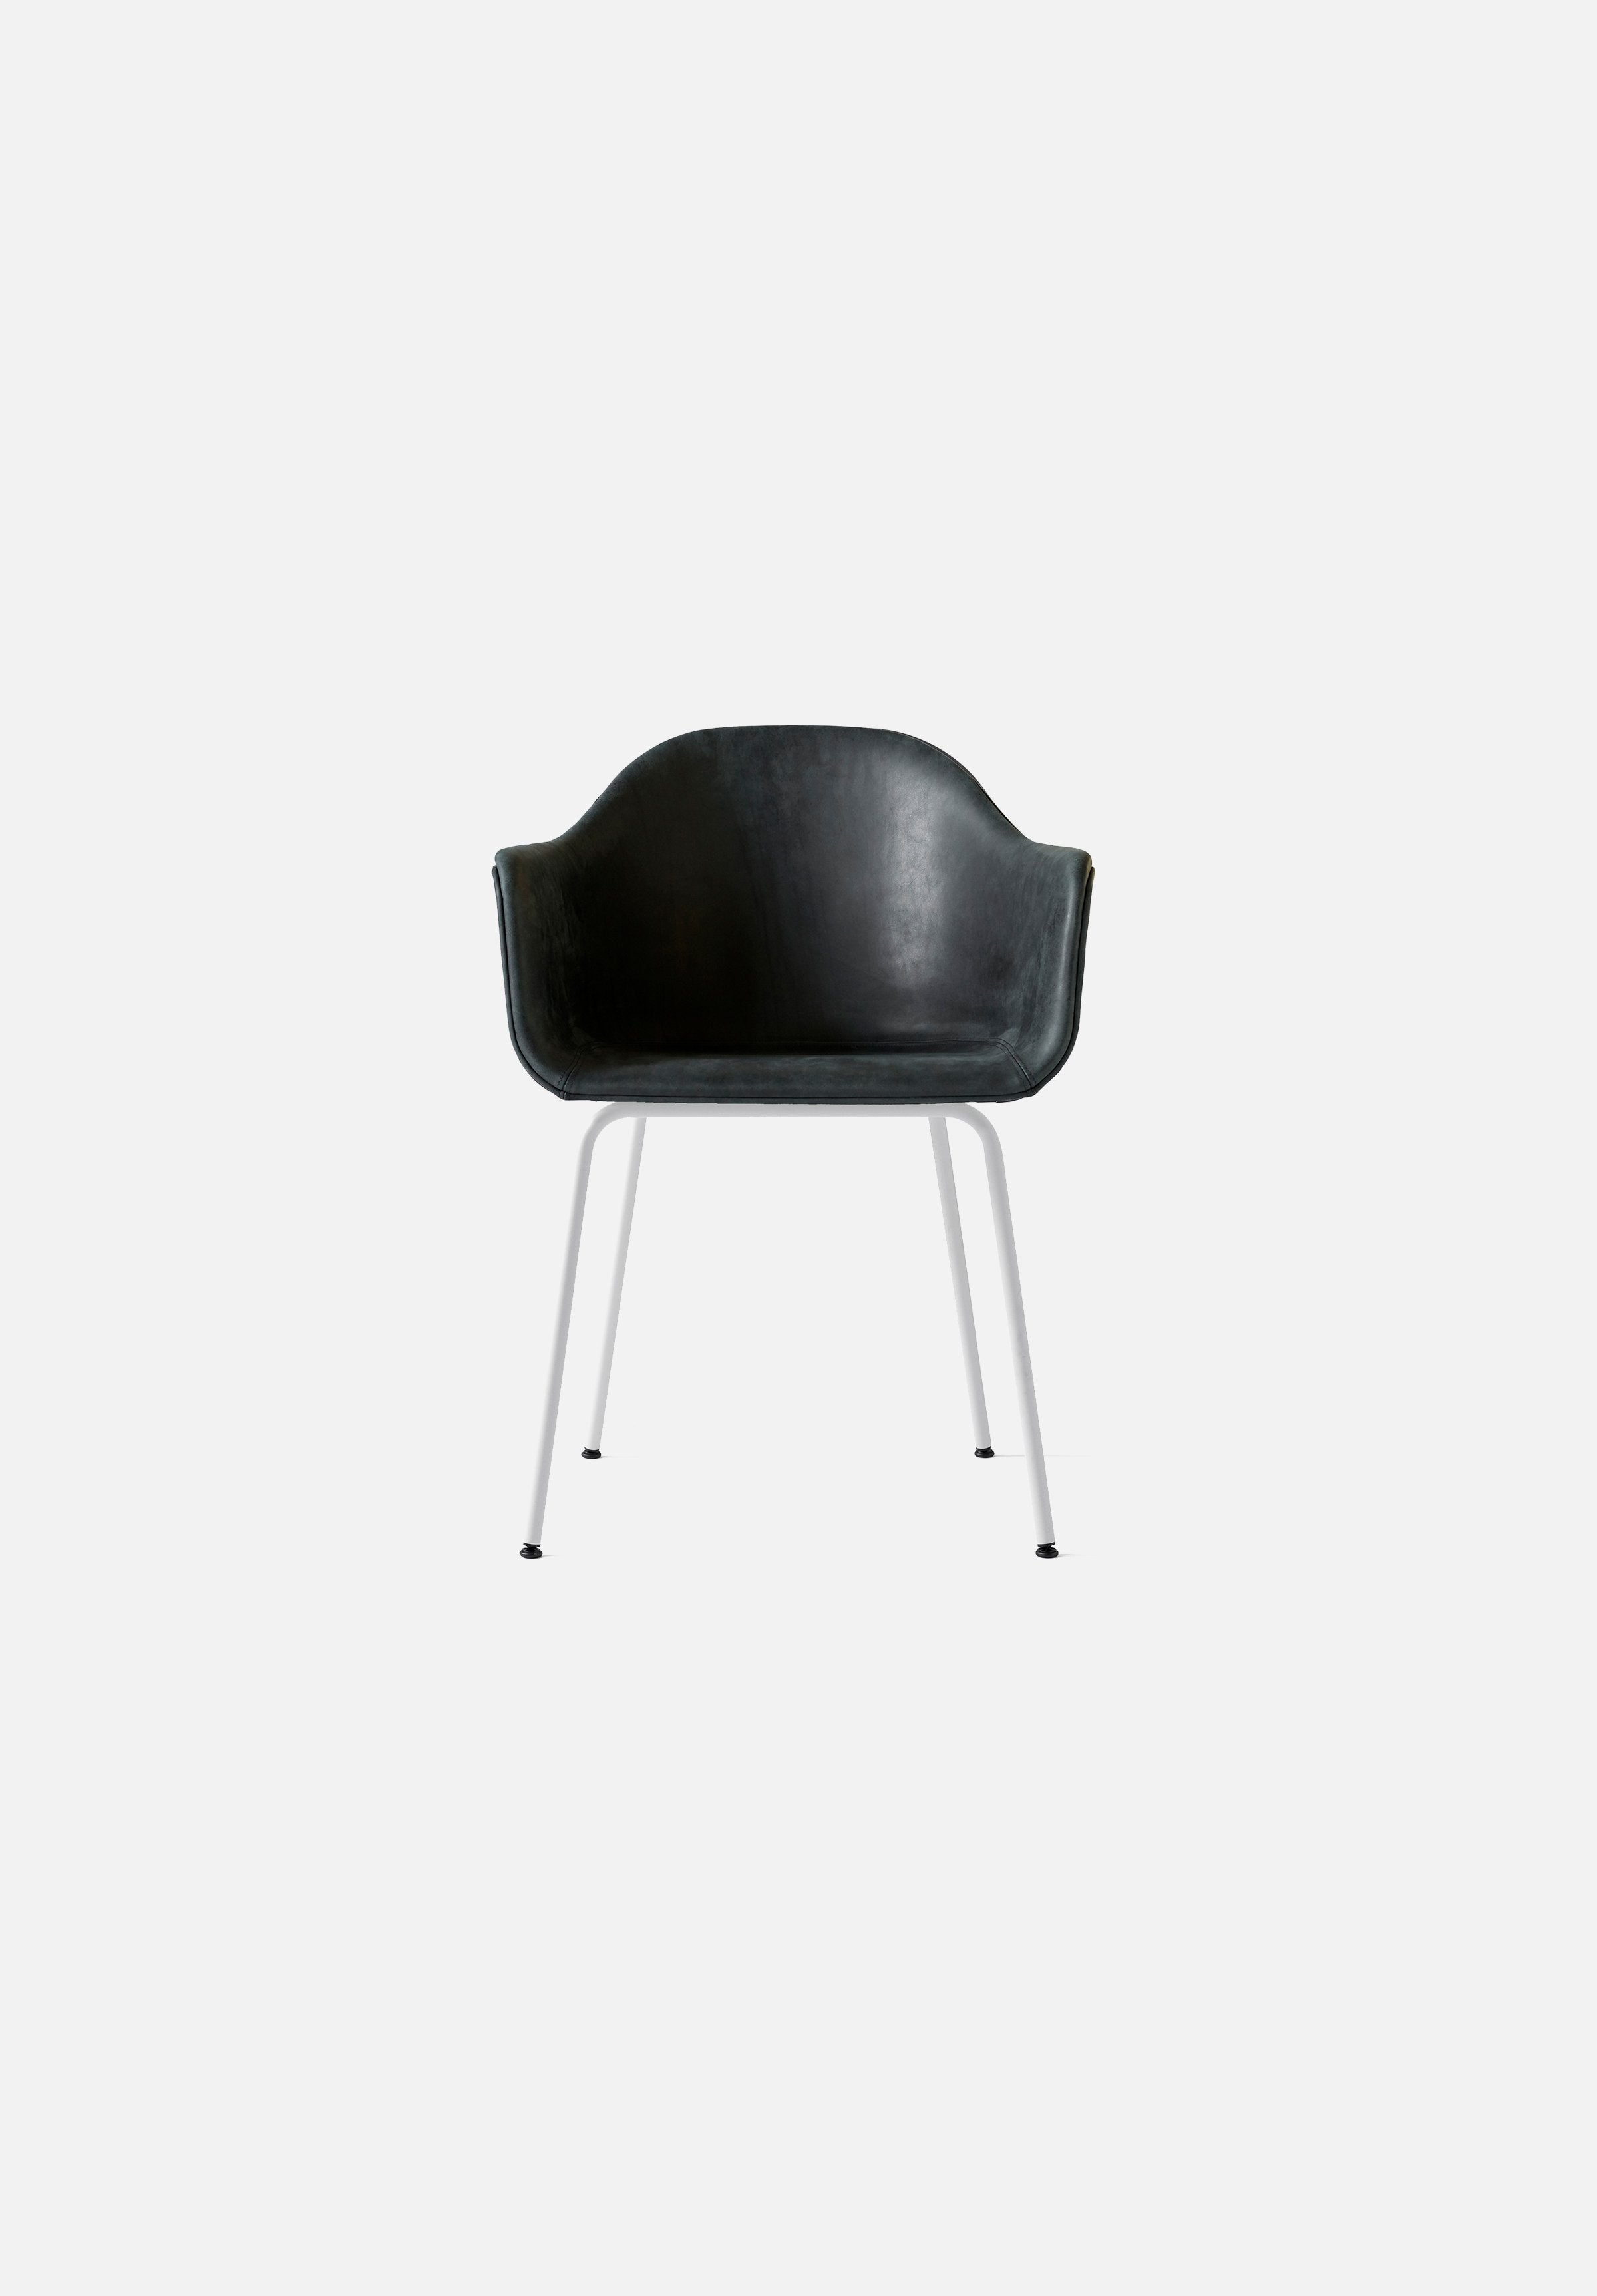 Harbour Chair - Steel Base-Norm Architects-Menu-black_leather-White Steel-danish-interior-furniture-denmark-Average-design-toronto-canada